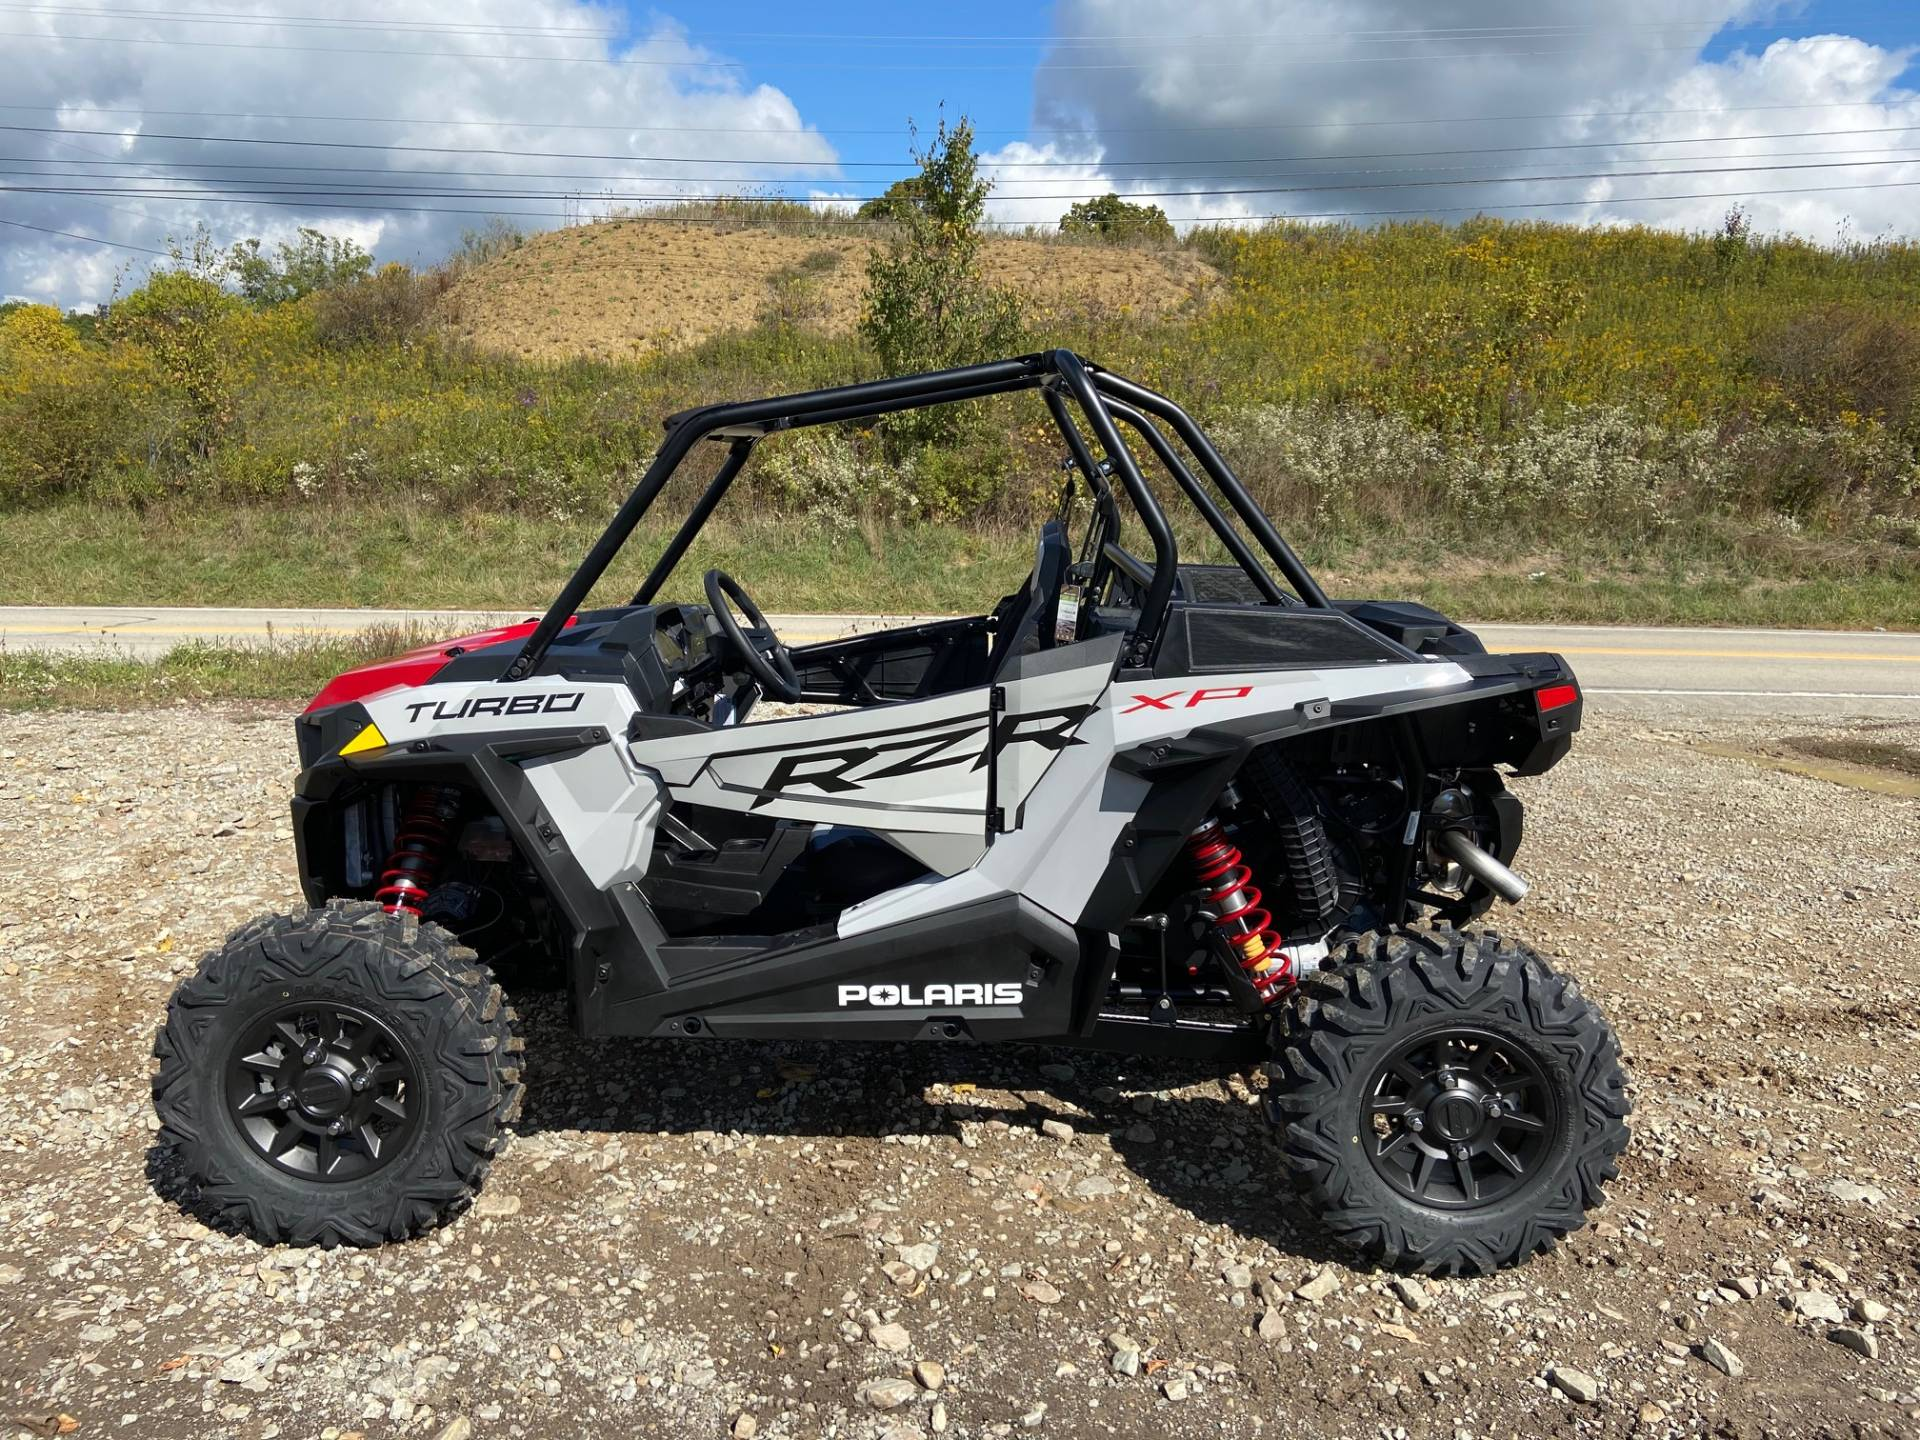 2021 Polaris RZR XP Turbo in Claysville, Pennsylvania - Photo 2